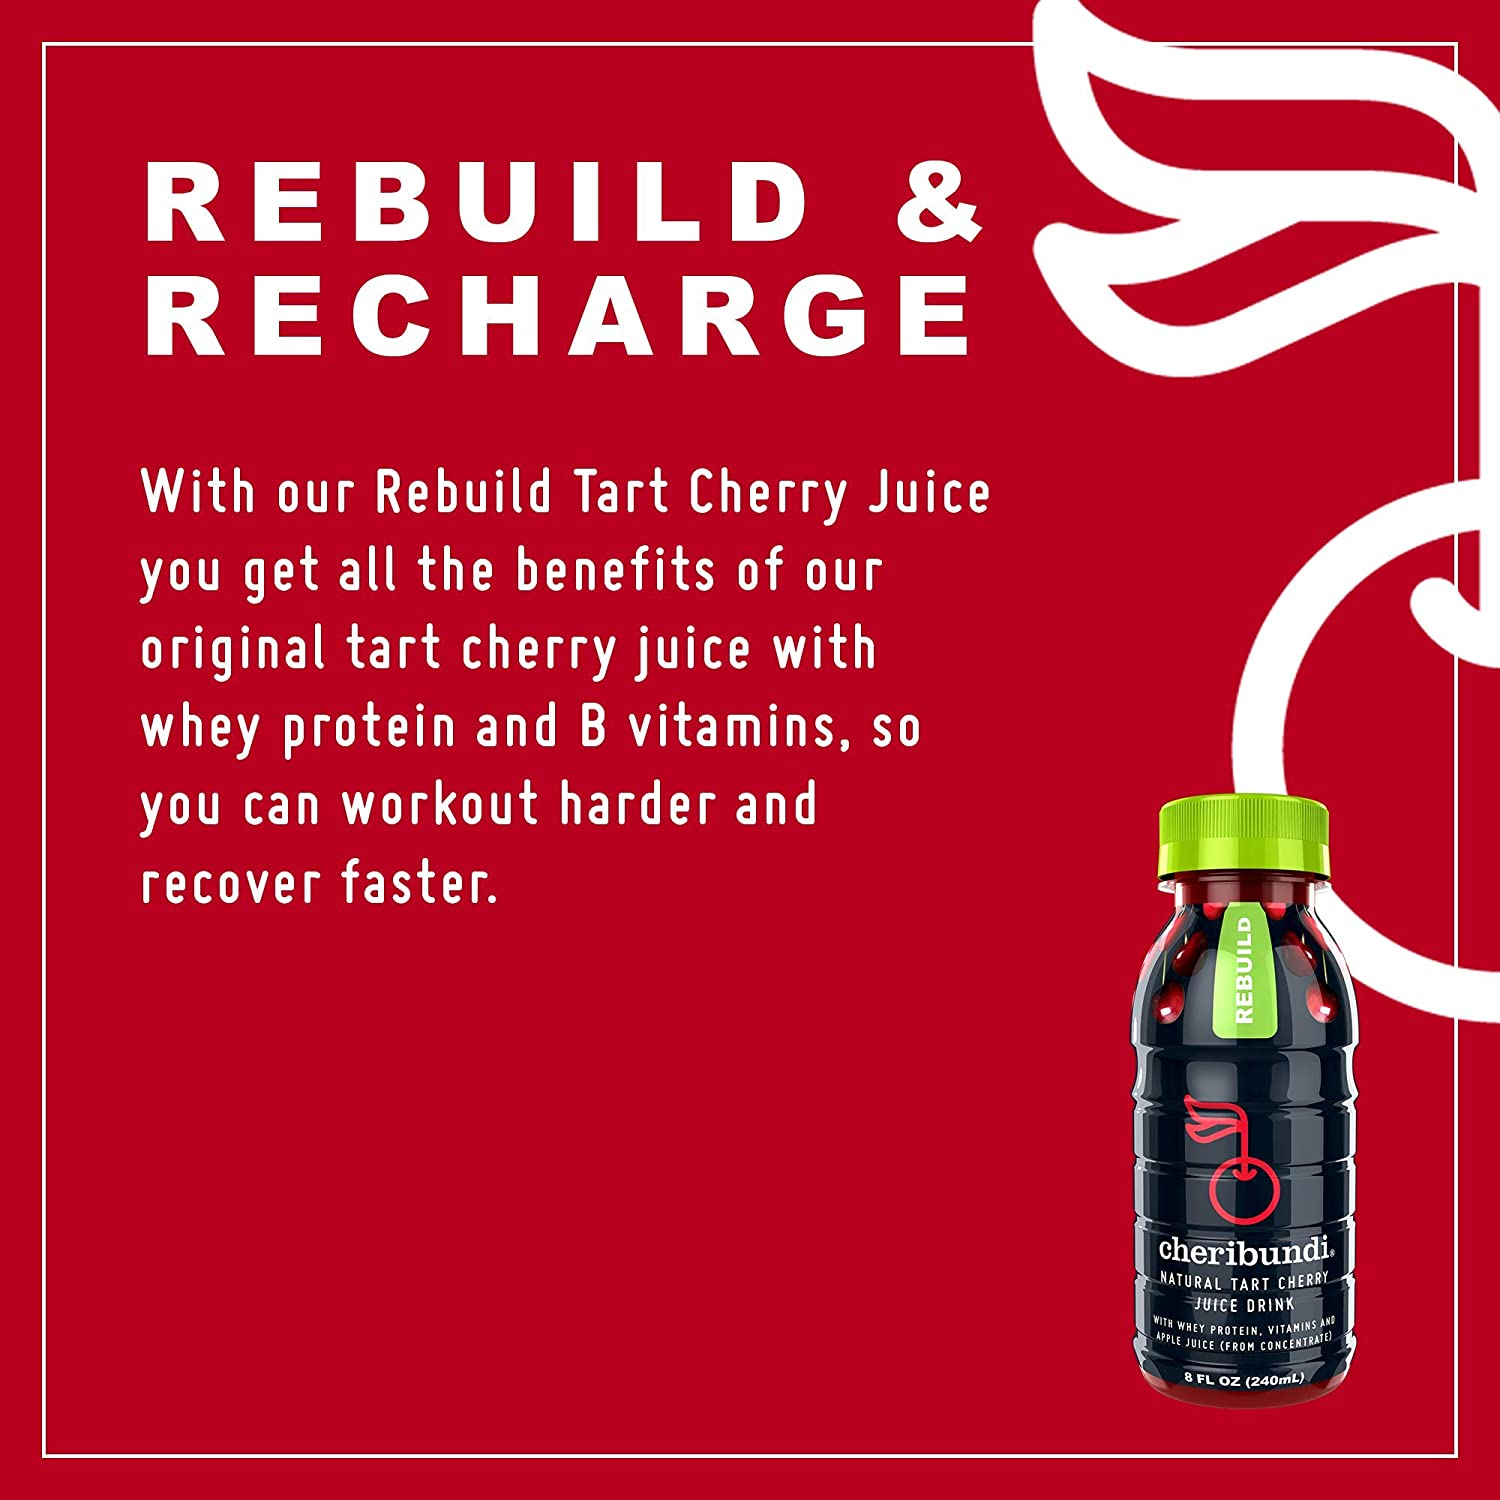 759544b8c2d Amazon.com   Cheribundi REBUILD Tart Cherry Juice - 45 Tart Cherries Per  8oz. Serving (Pack of 12) with B Vitamin Complex and 9g Whey Protein